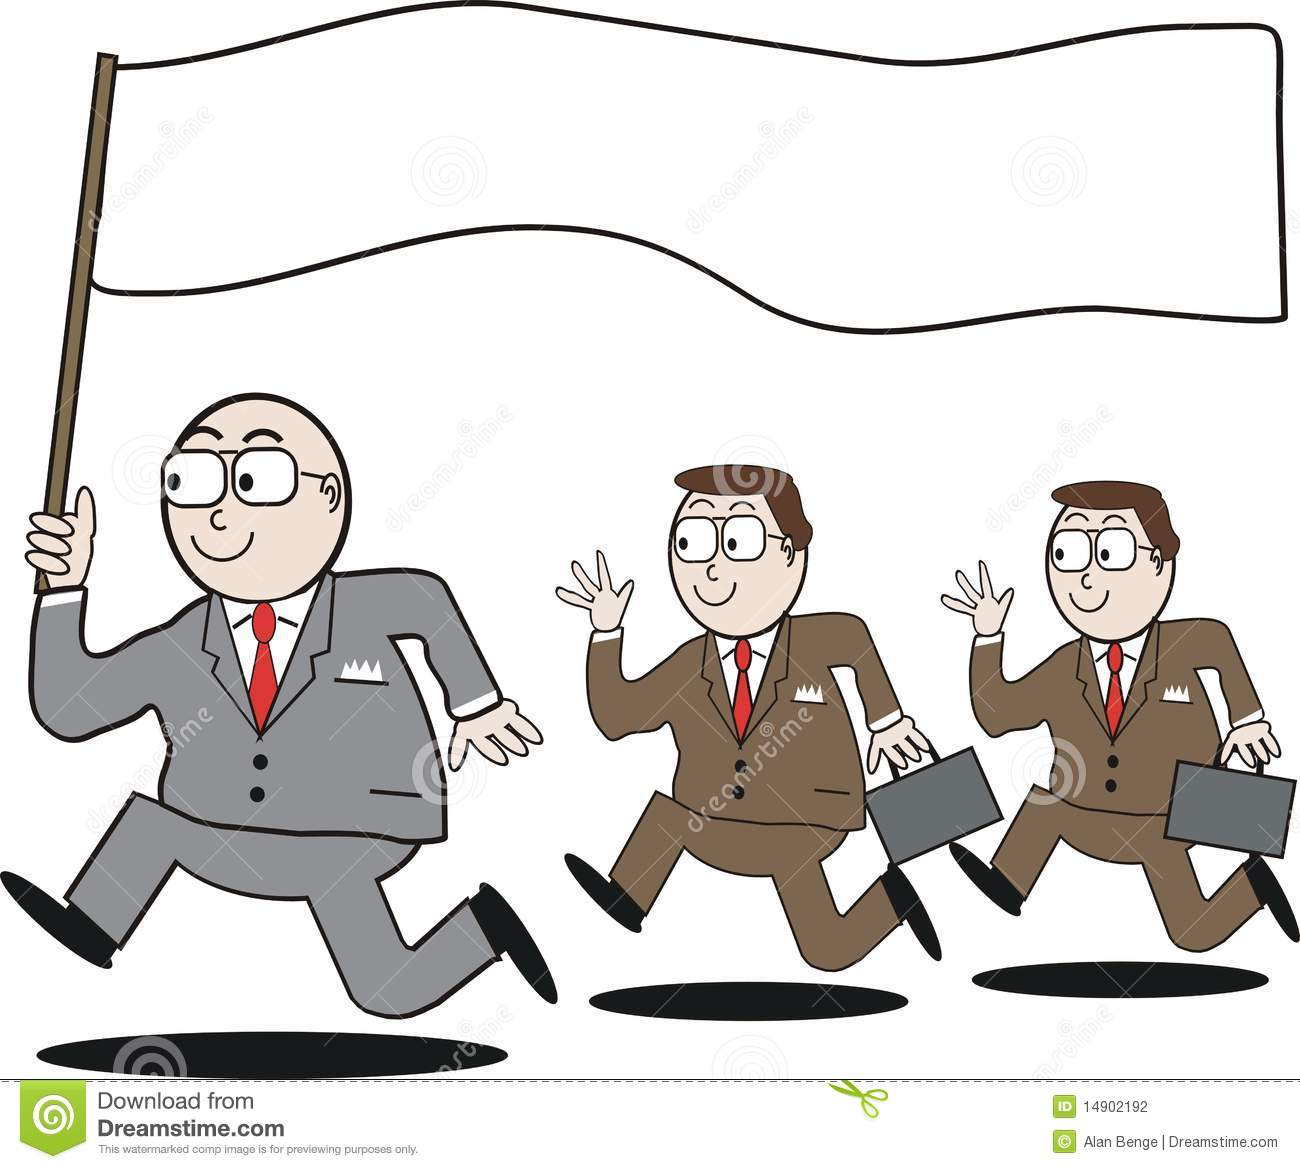 Cartoon of business leader running with blank flag, followed by ...